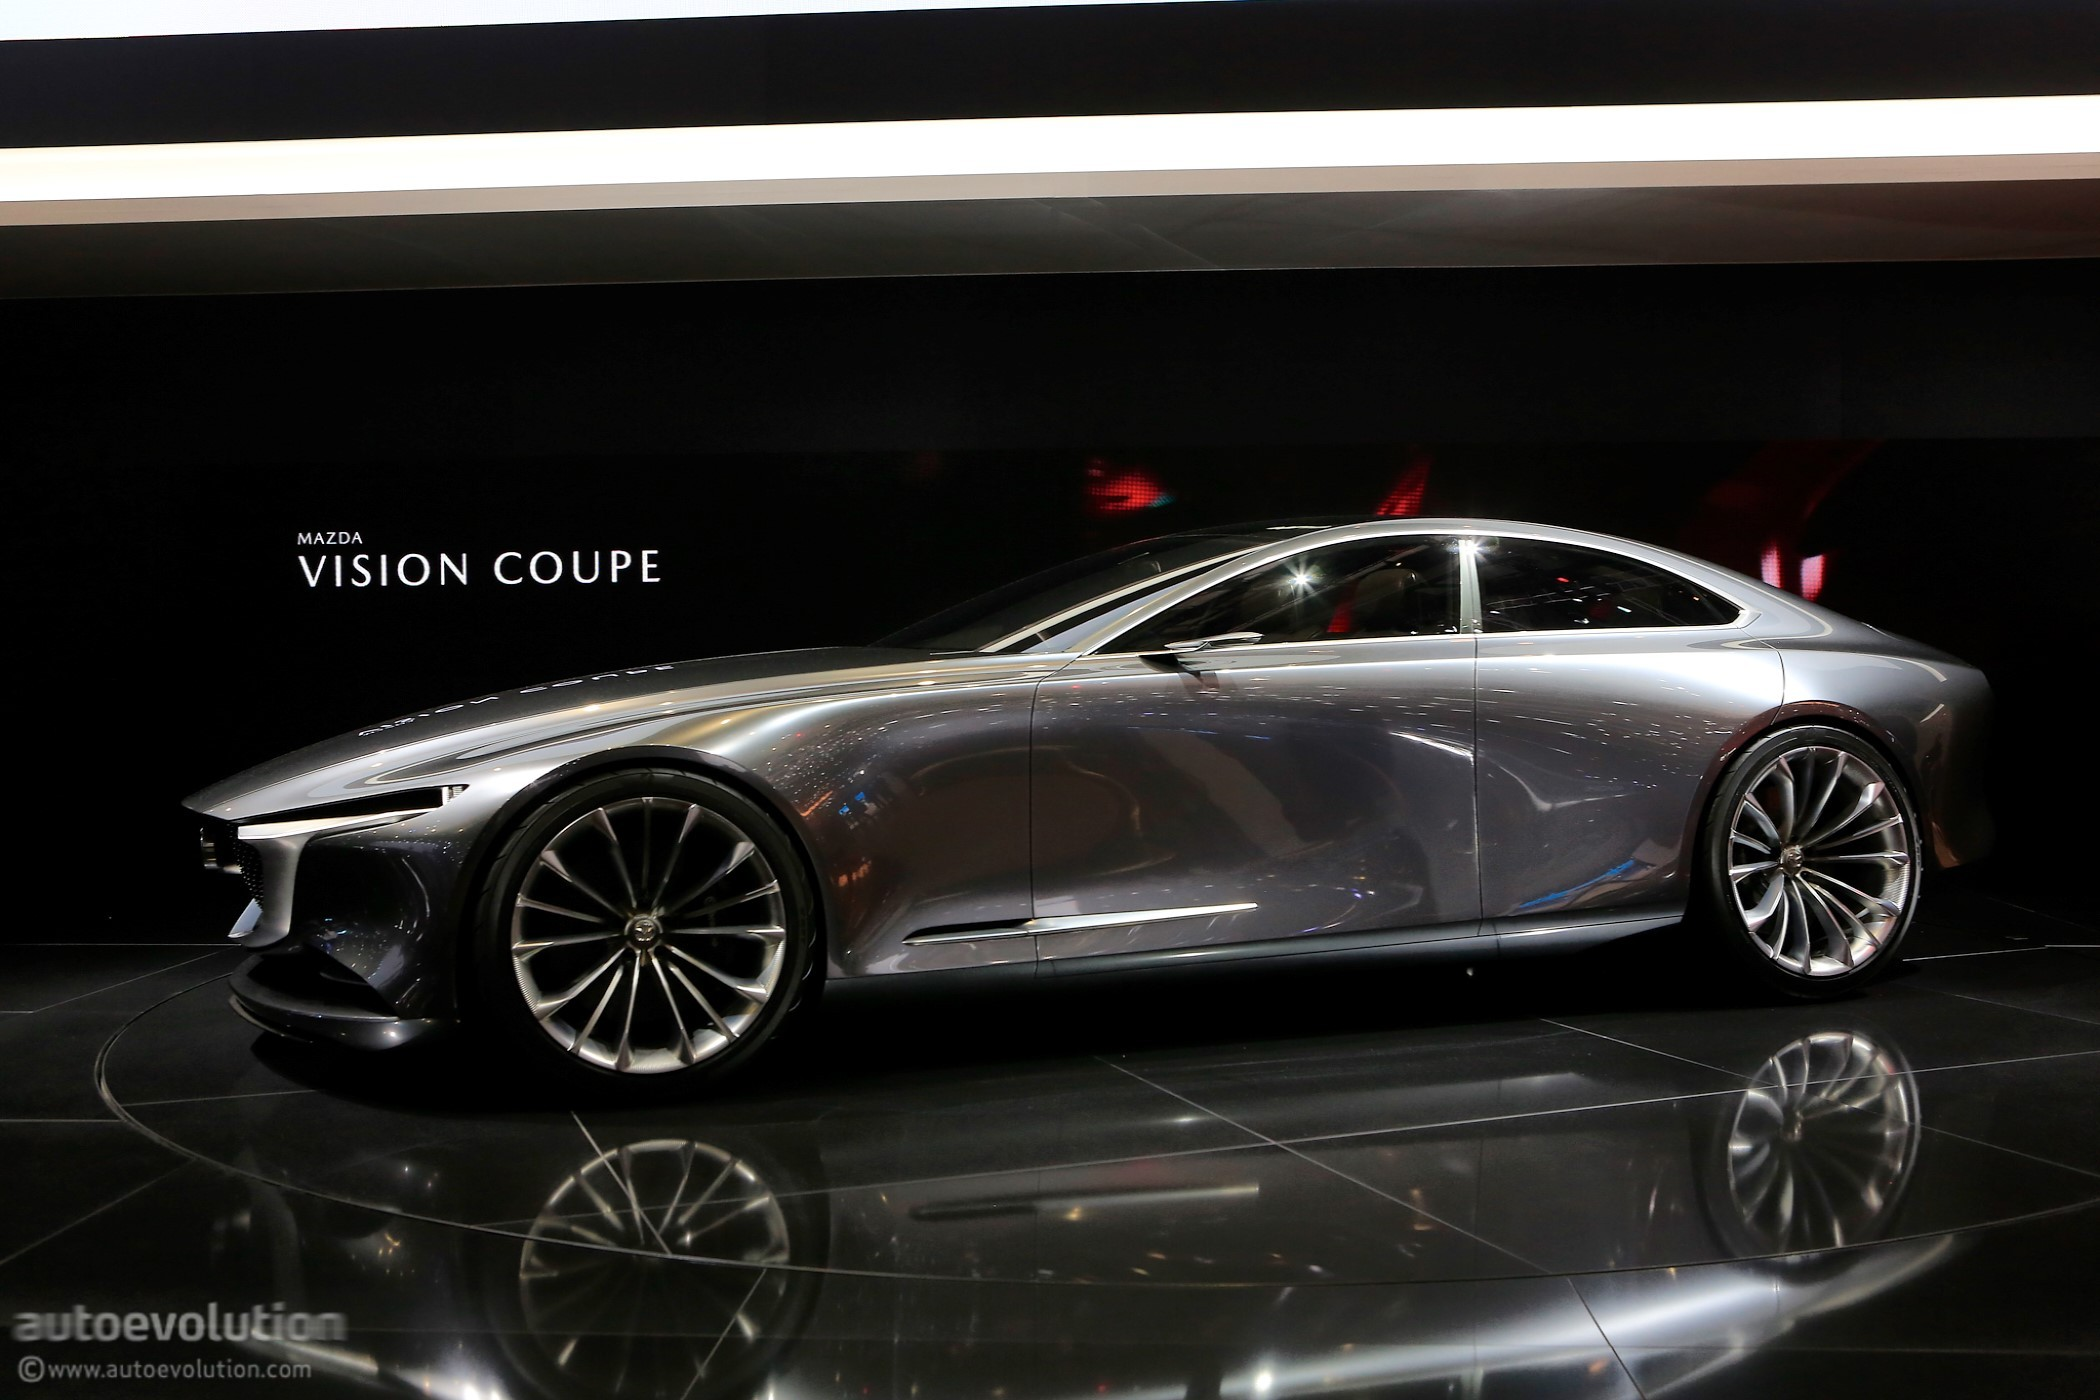 mazda vision coupe makes european debut in geneva looks stunning autoevolution. Black Bedroom Furniture Sets. Home Design Ideas